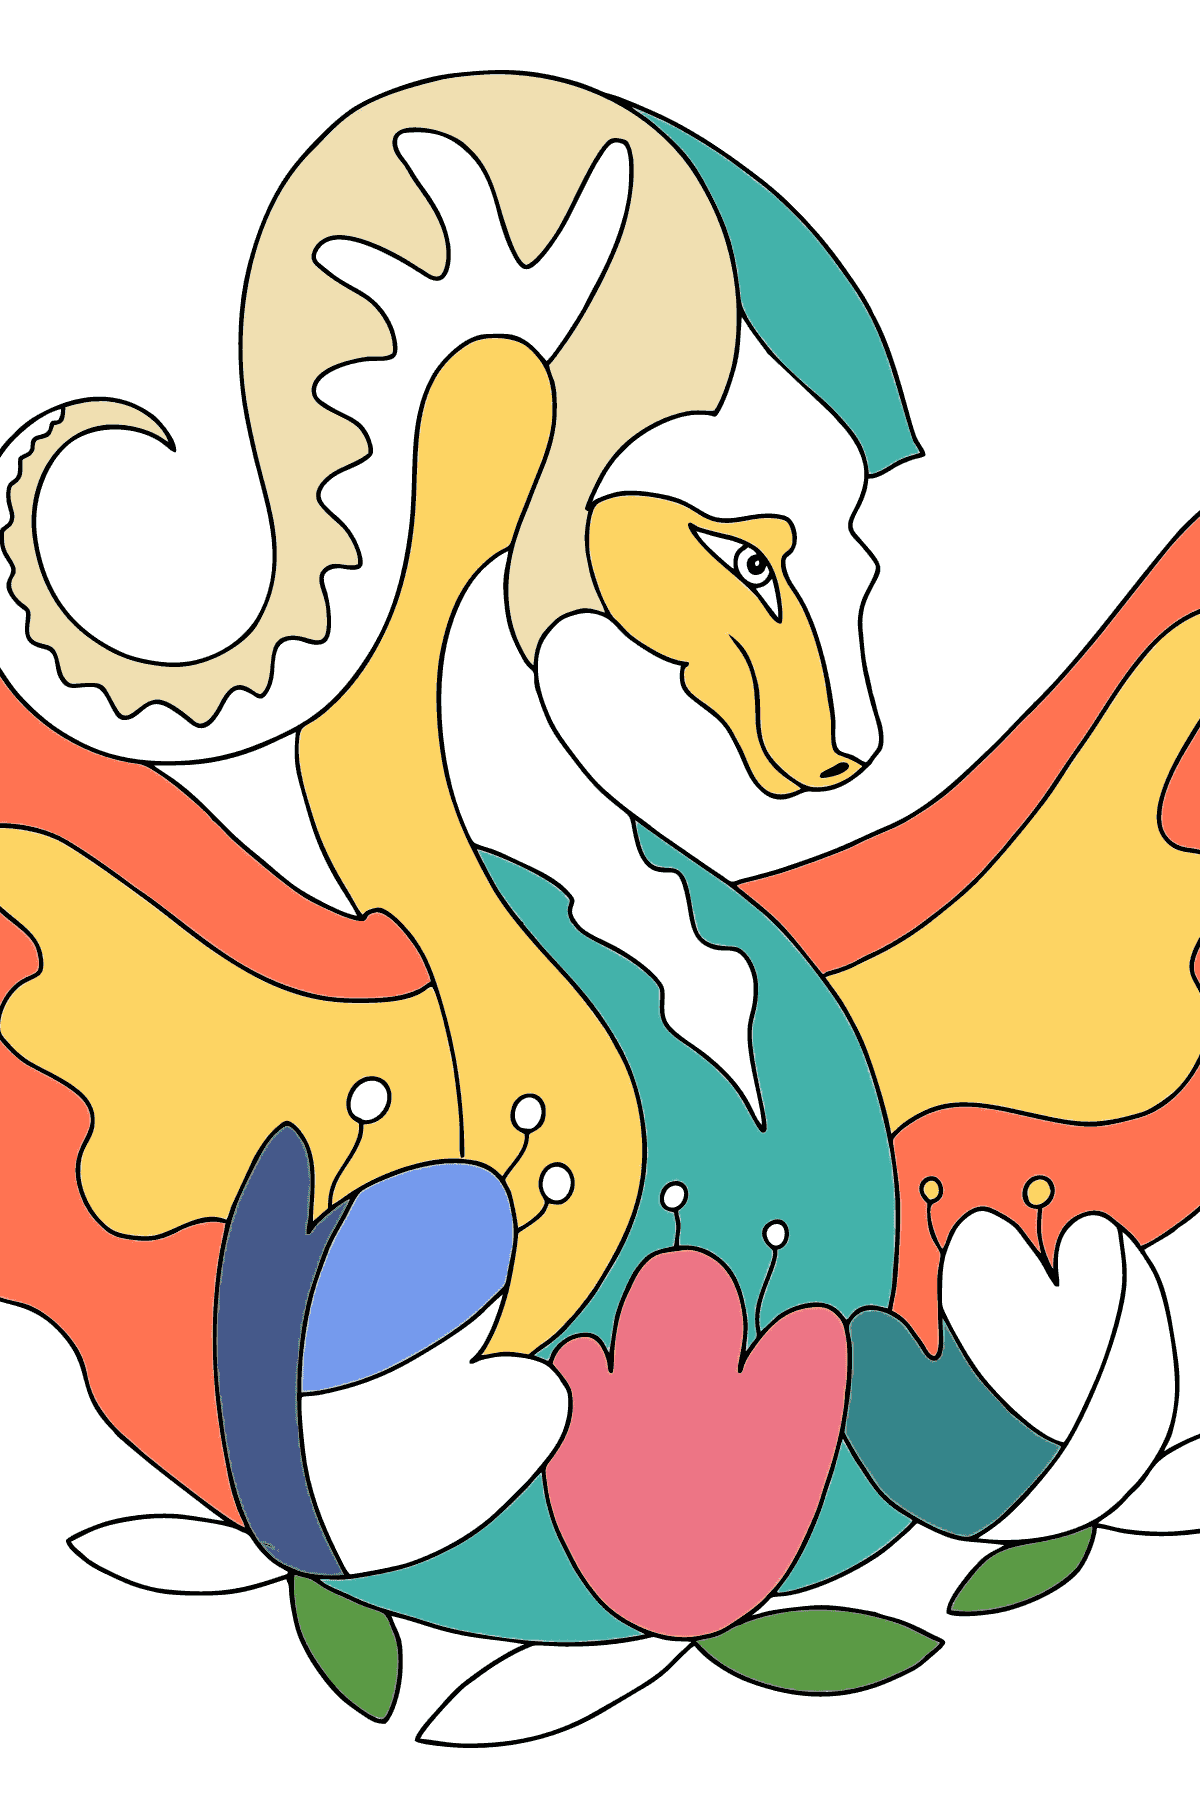 Coloring Page - A Rainbow Dragon - Coloring Pages for Children